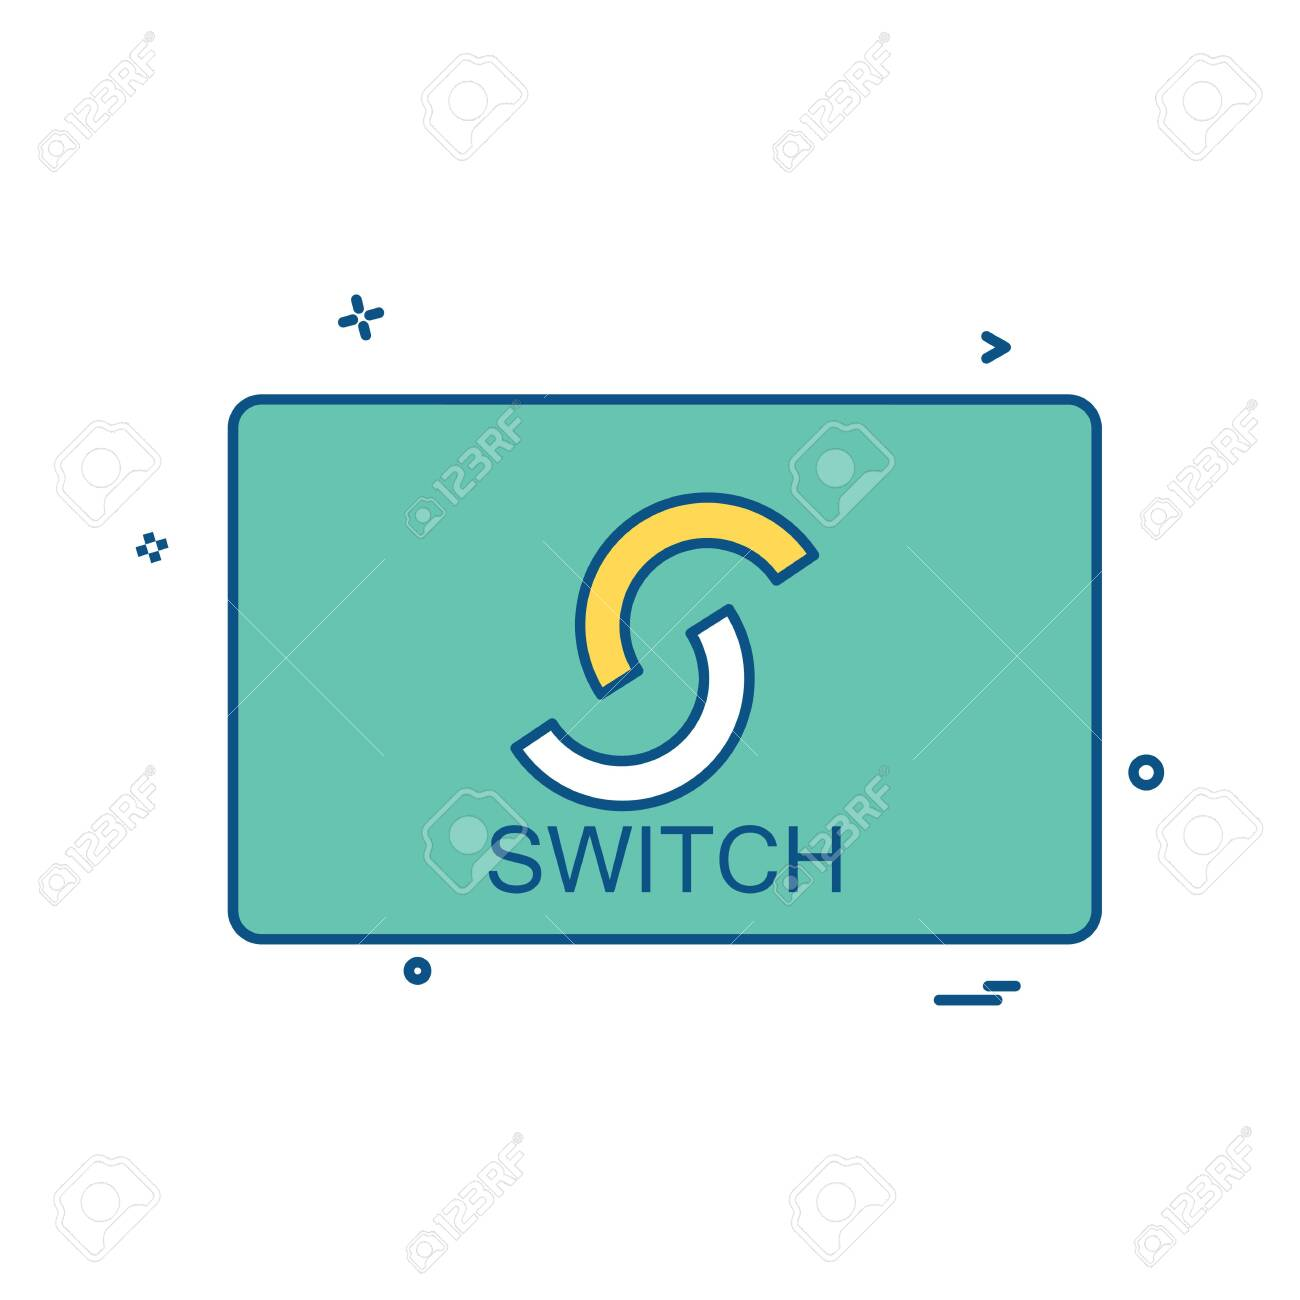 Switch card icon design vector - 150424702